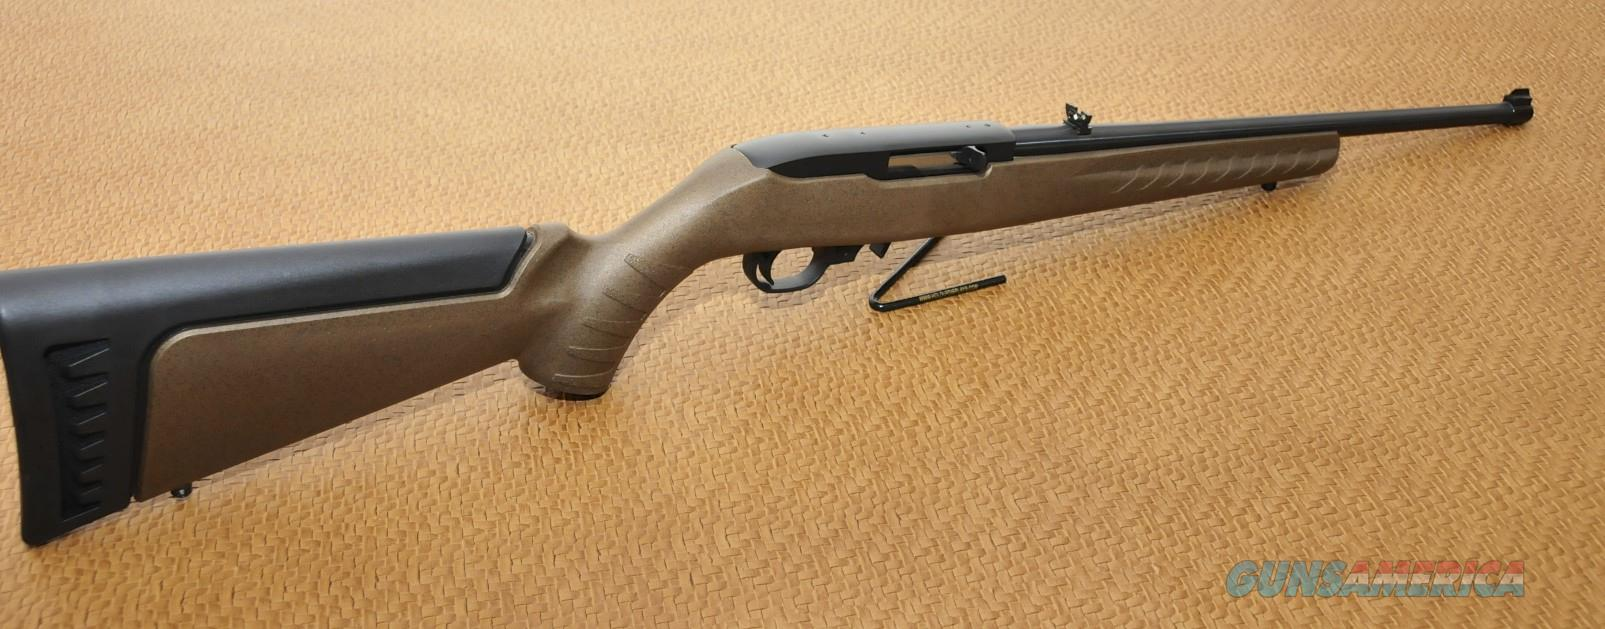 Special edition ruger 10/22 fin feather fur 30th anniversary.